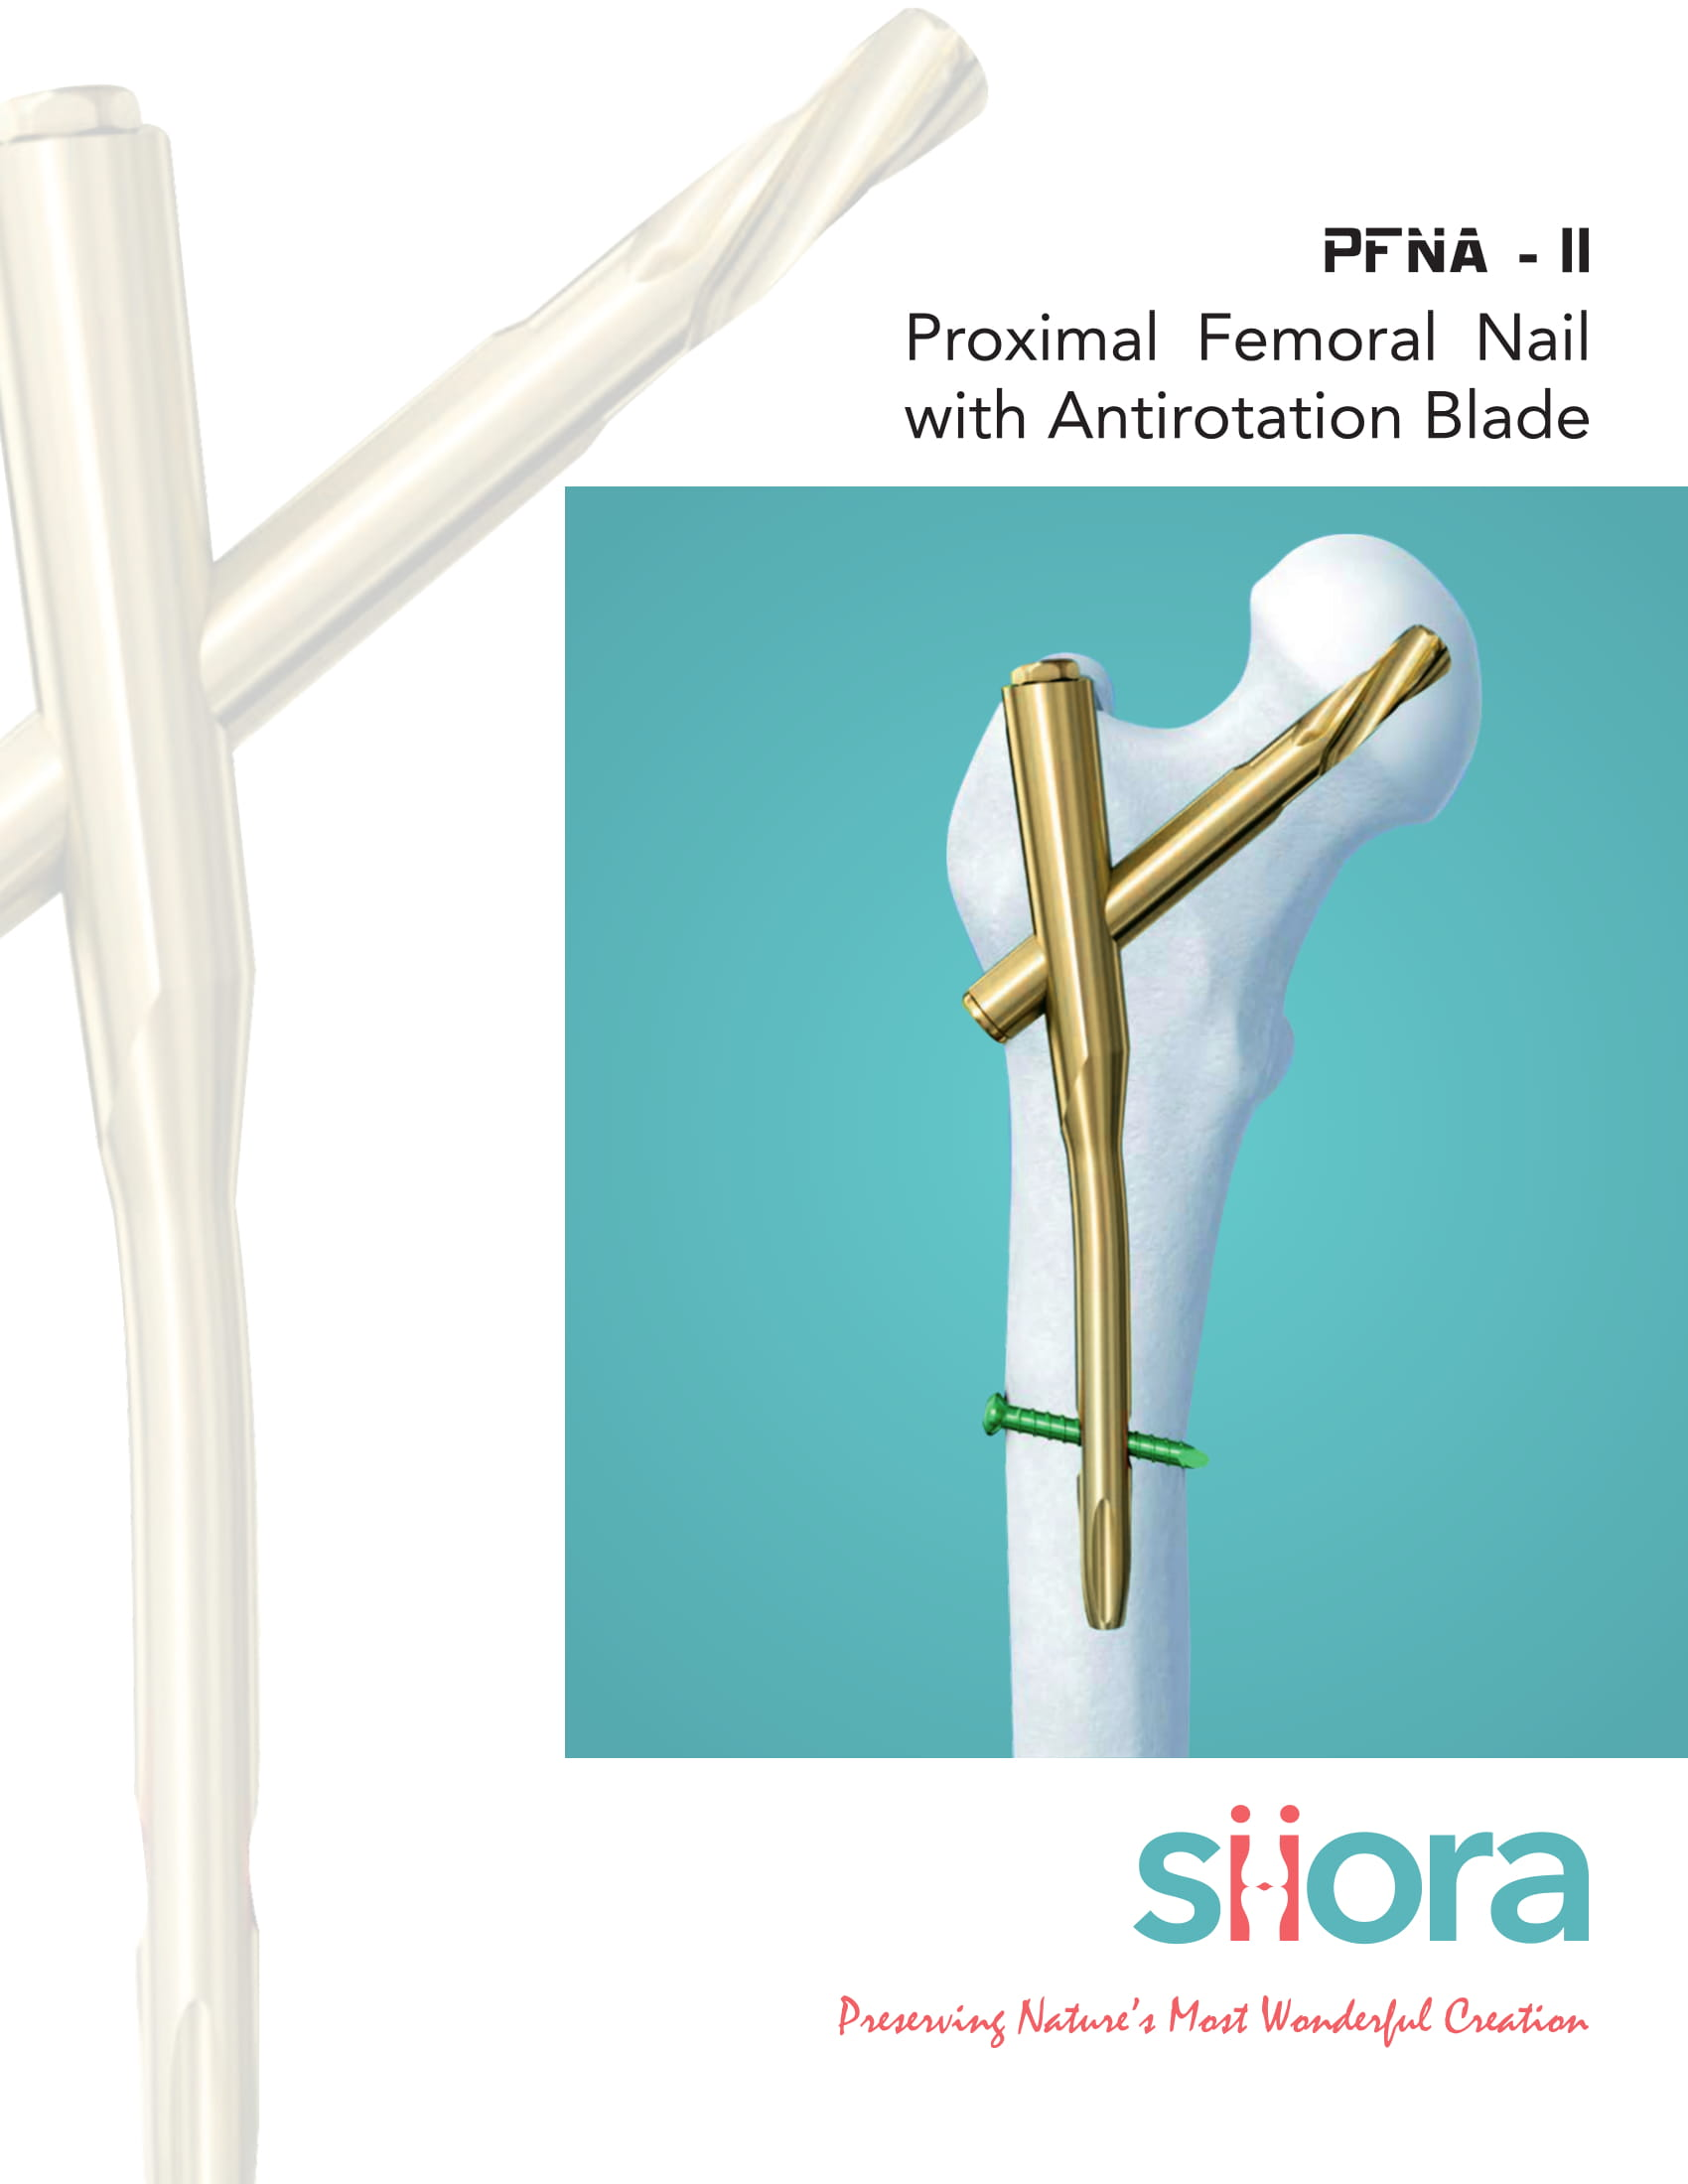 PFNA-II-PROXIMAL-FEMORAL-NAIL-WITH-ANTIROTATION-BLADE